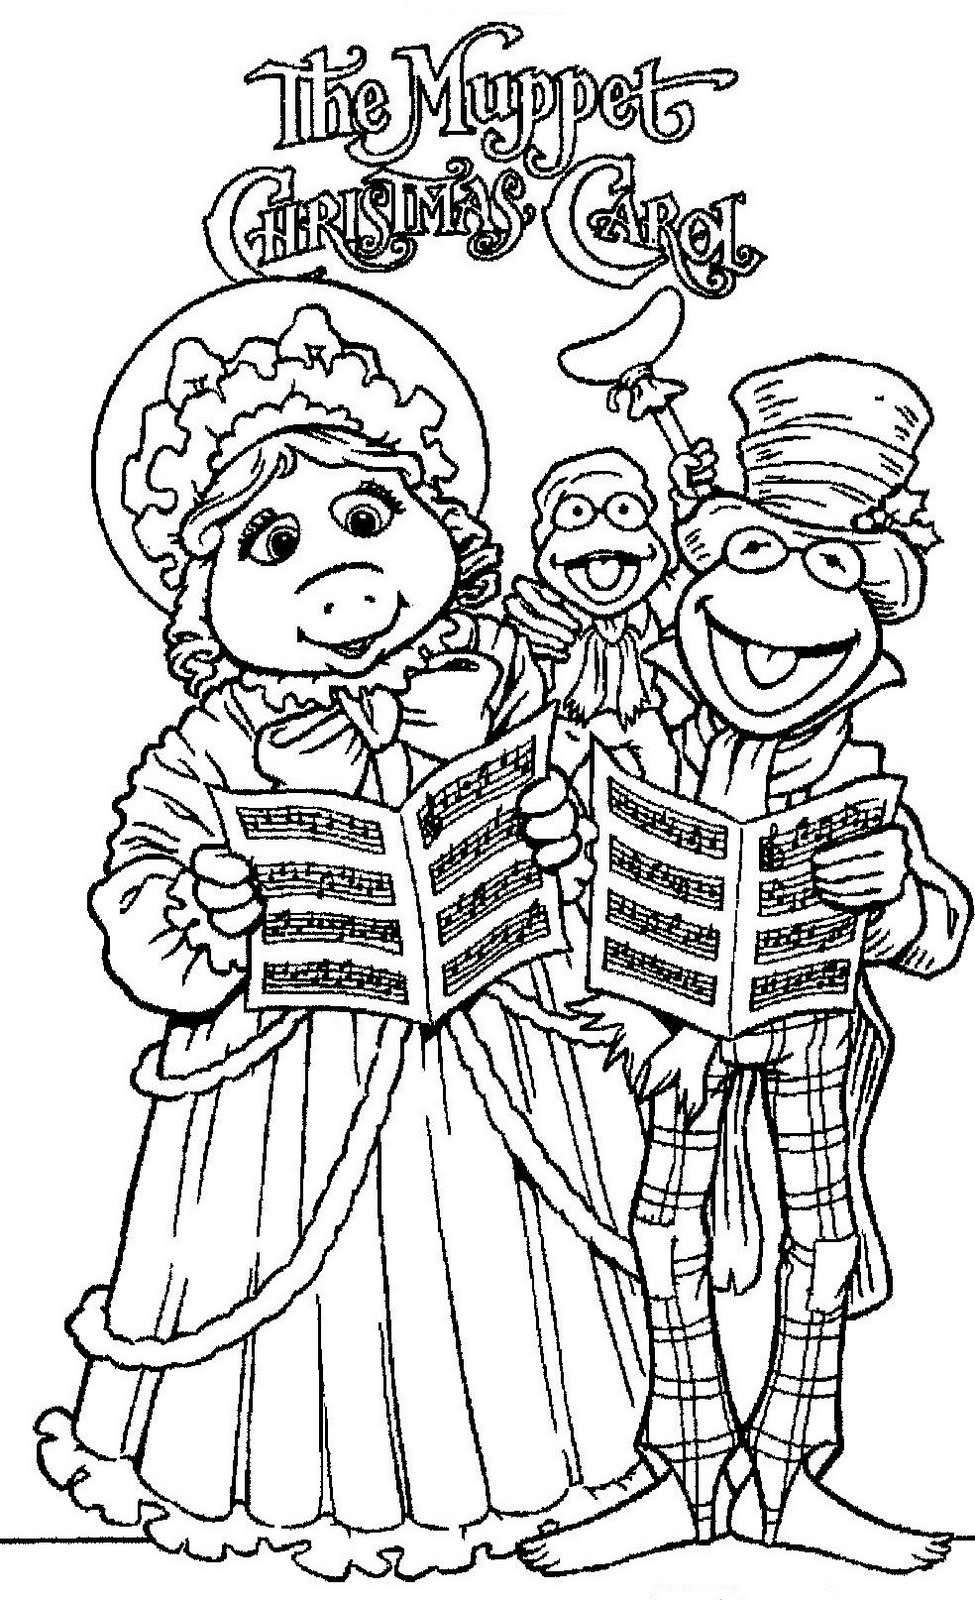 975x1600 The Muppets Drawings Coloringchild Coloring And Children